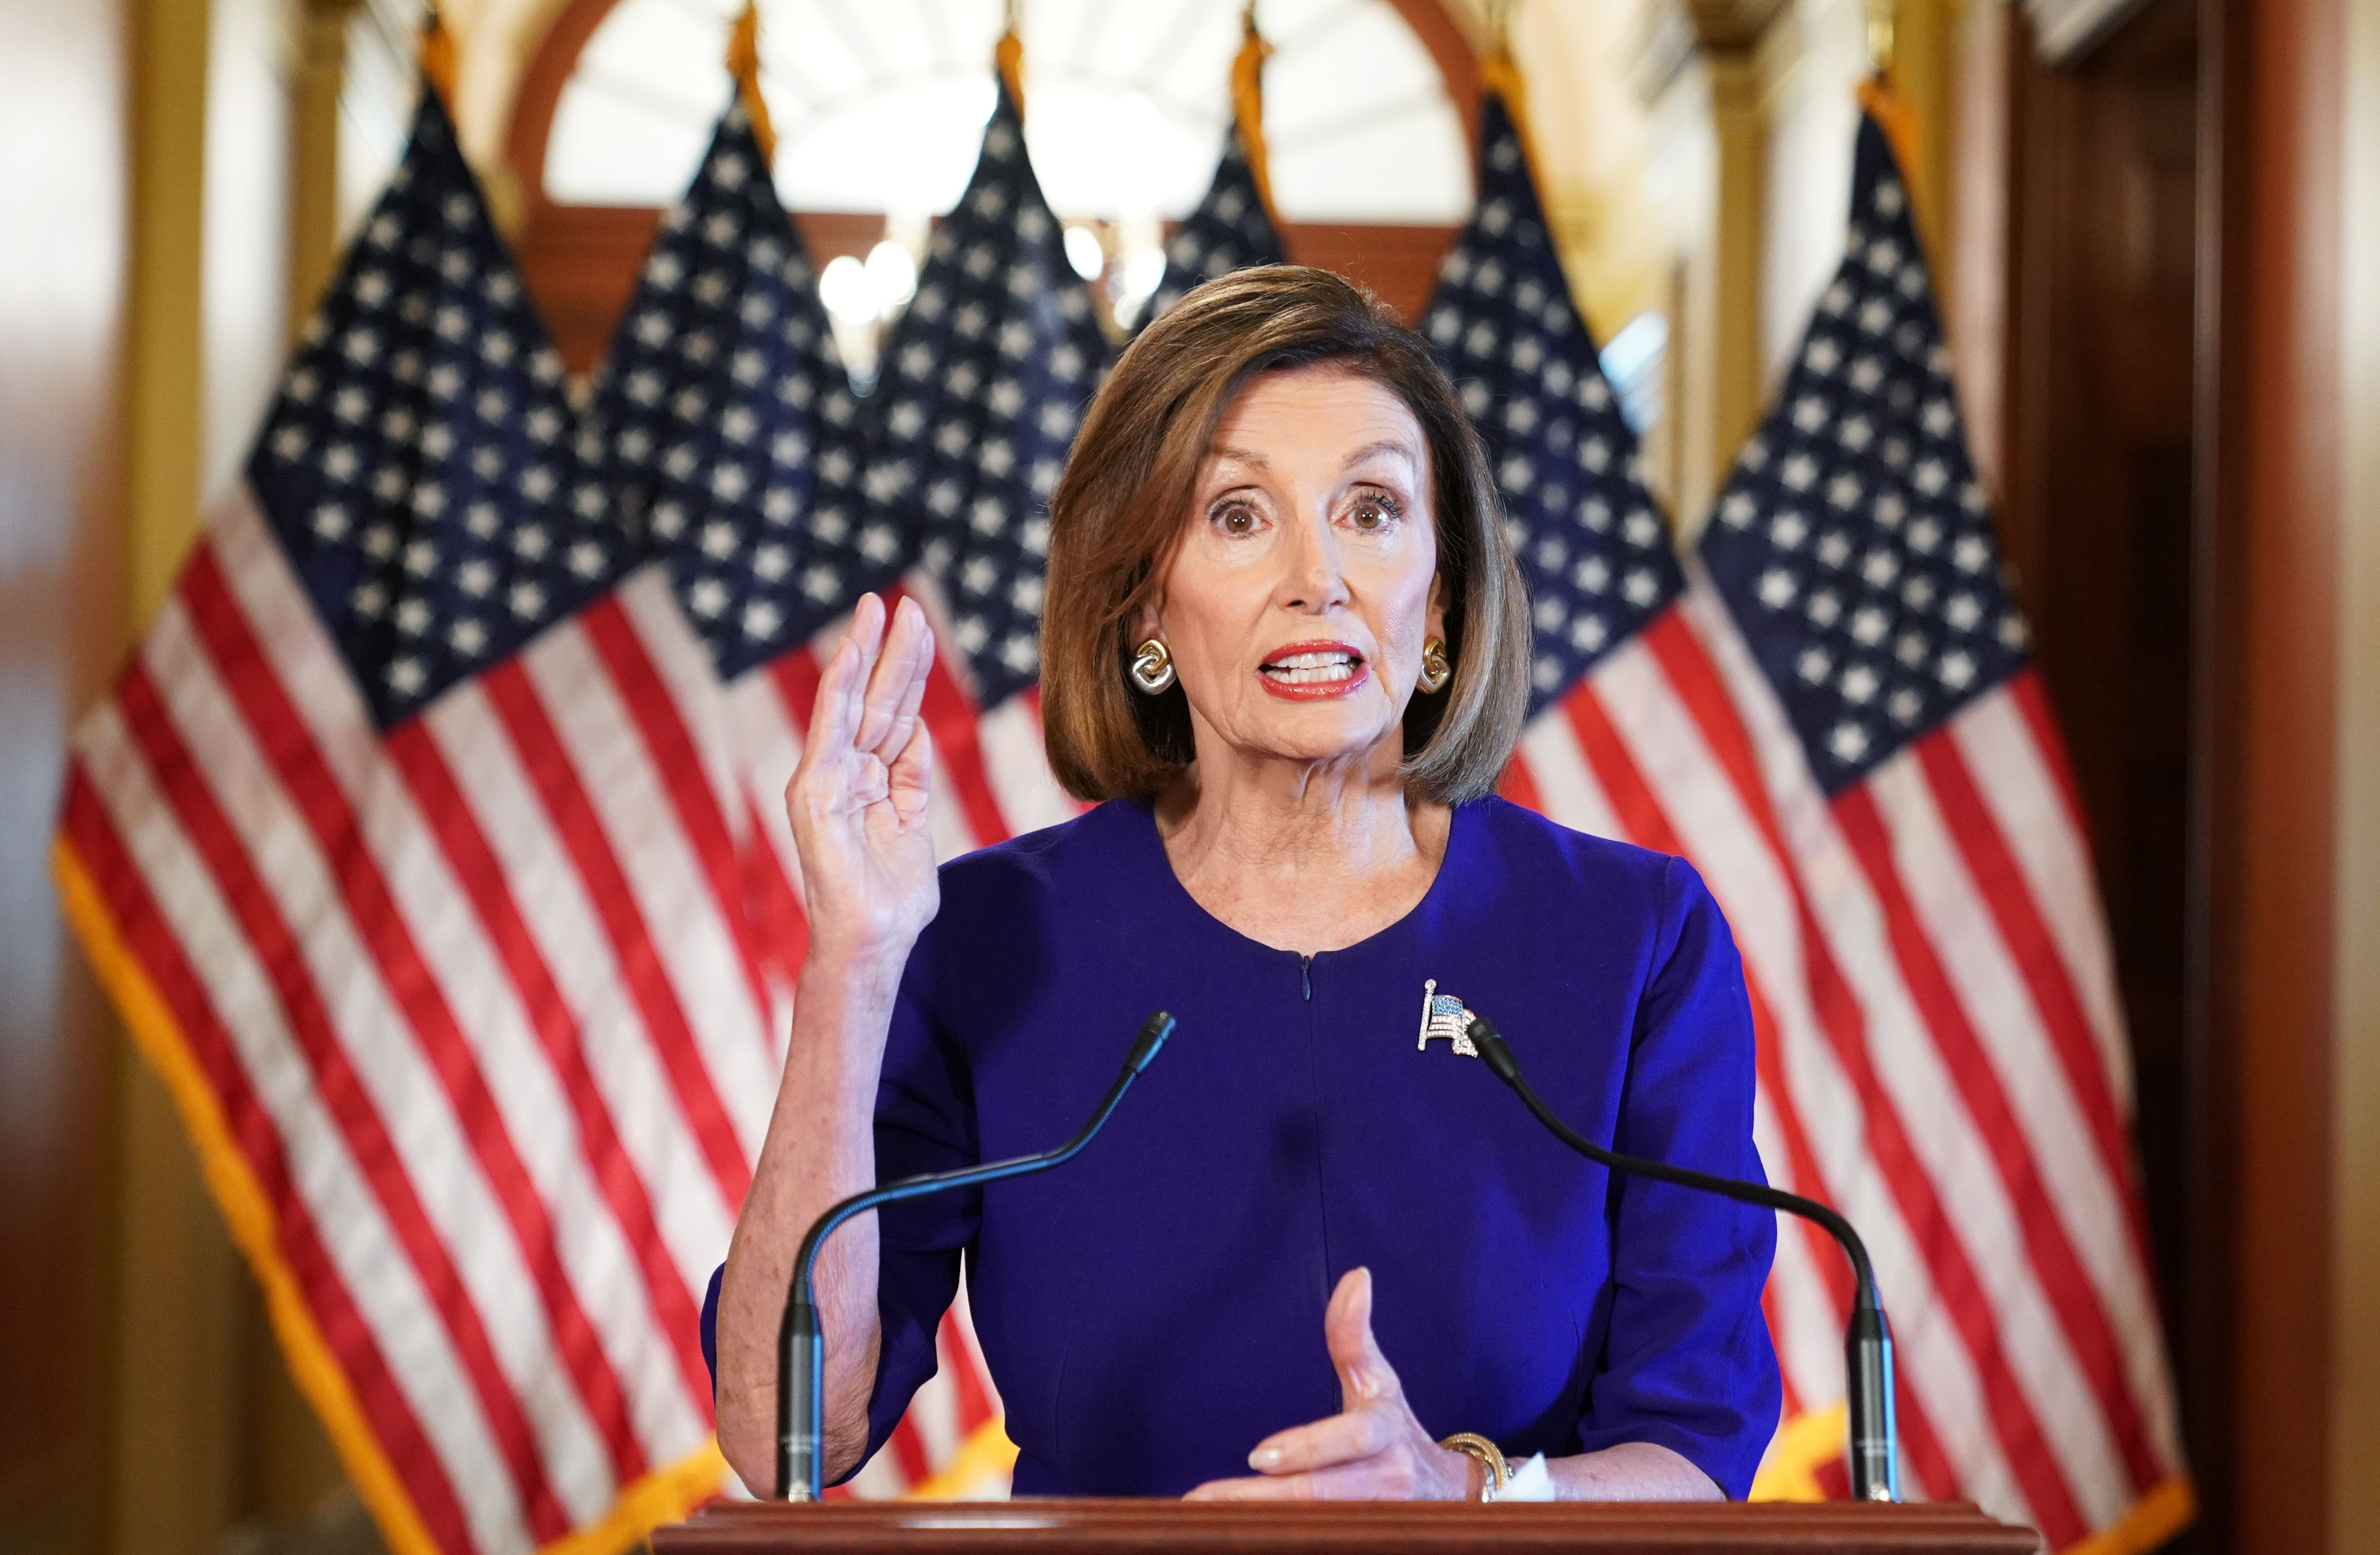 TOPSHOT - US Speaker of the House Nancy Pelosi, Democrat of California, announces a formal impeachment inquiry of US President Donald Trump on September 24, 2019, in Washington, DC. - Amid mounting allegations of abuse of power by the US president, Pelosi announced the start of the inquiry in the House of Representatives, the first step in a process that could ultimately lead to Trump's removal from office. (Photo by MANDEL NGAN / AFP) (Photo by MANDEL NGAN/AFP via Getty Images)